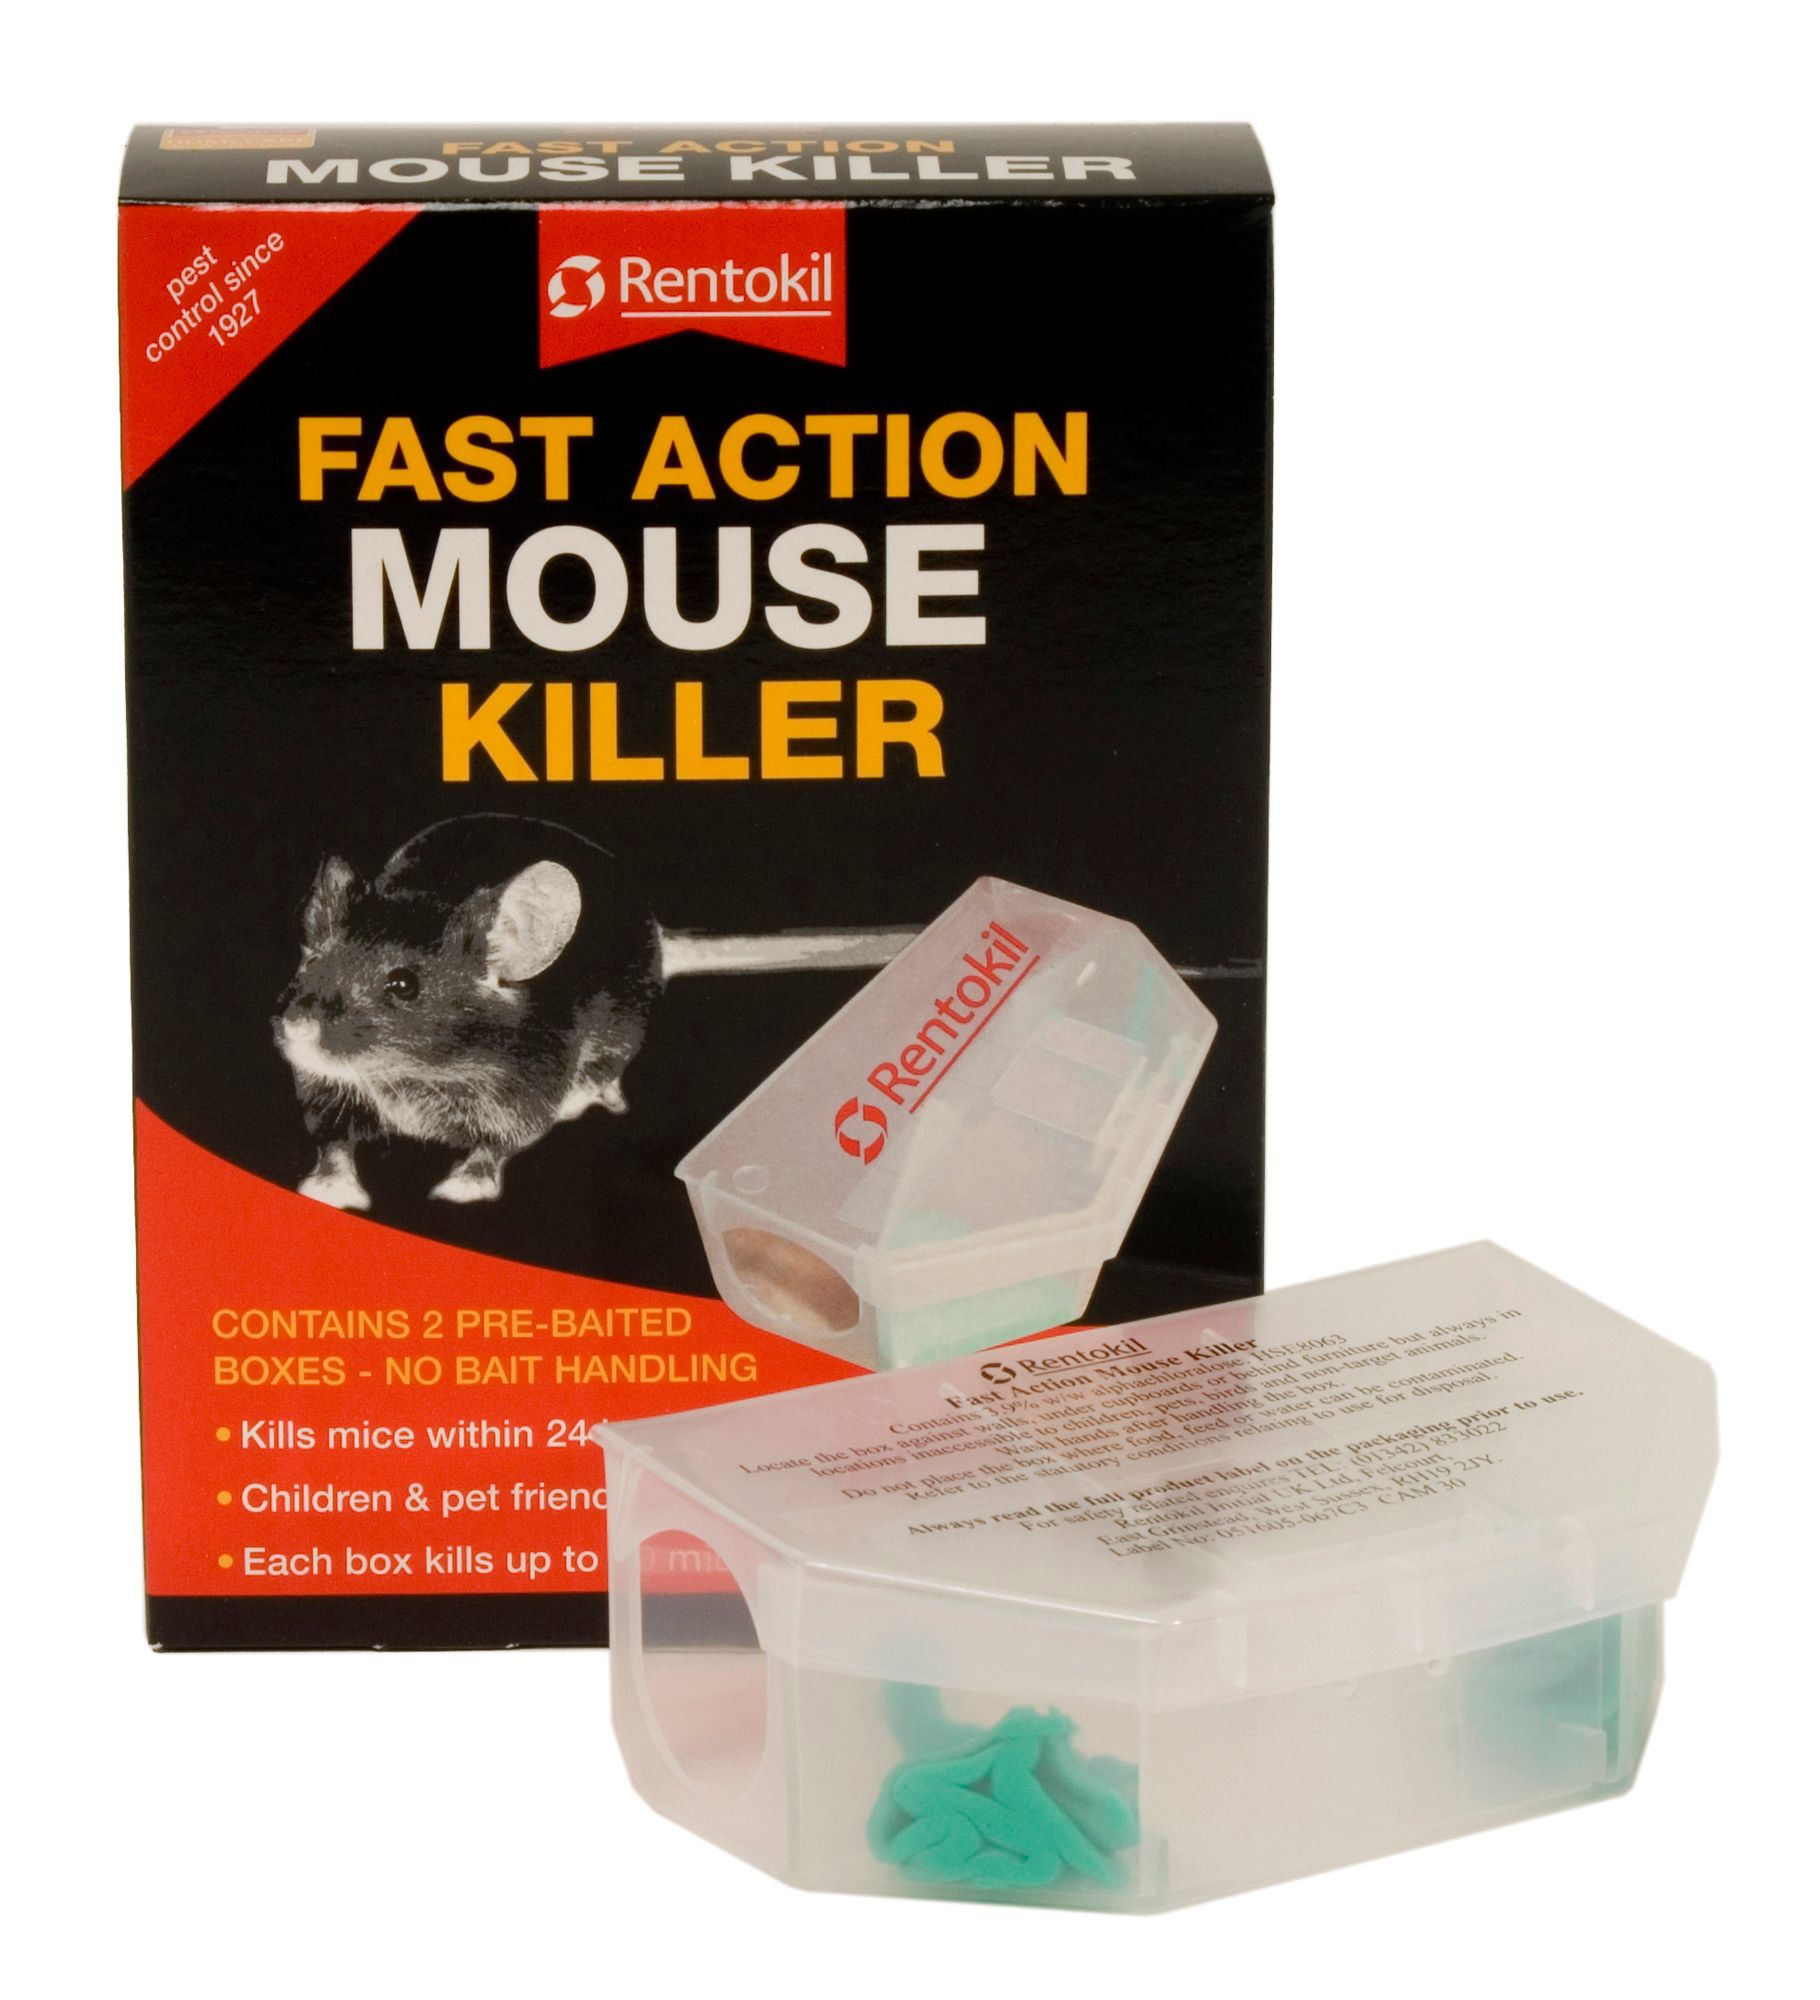 Rentokil Fast Action Poisonous Bait Trap Mouse Control 131